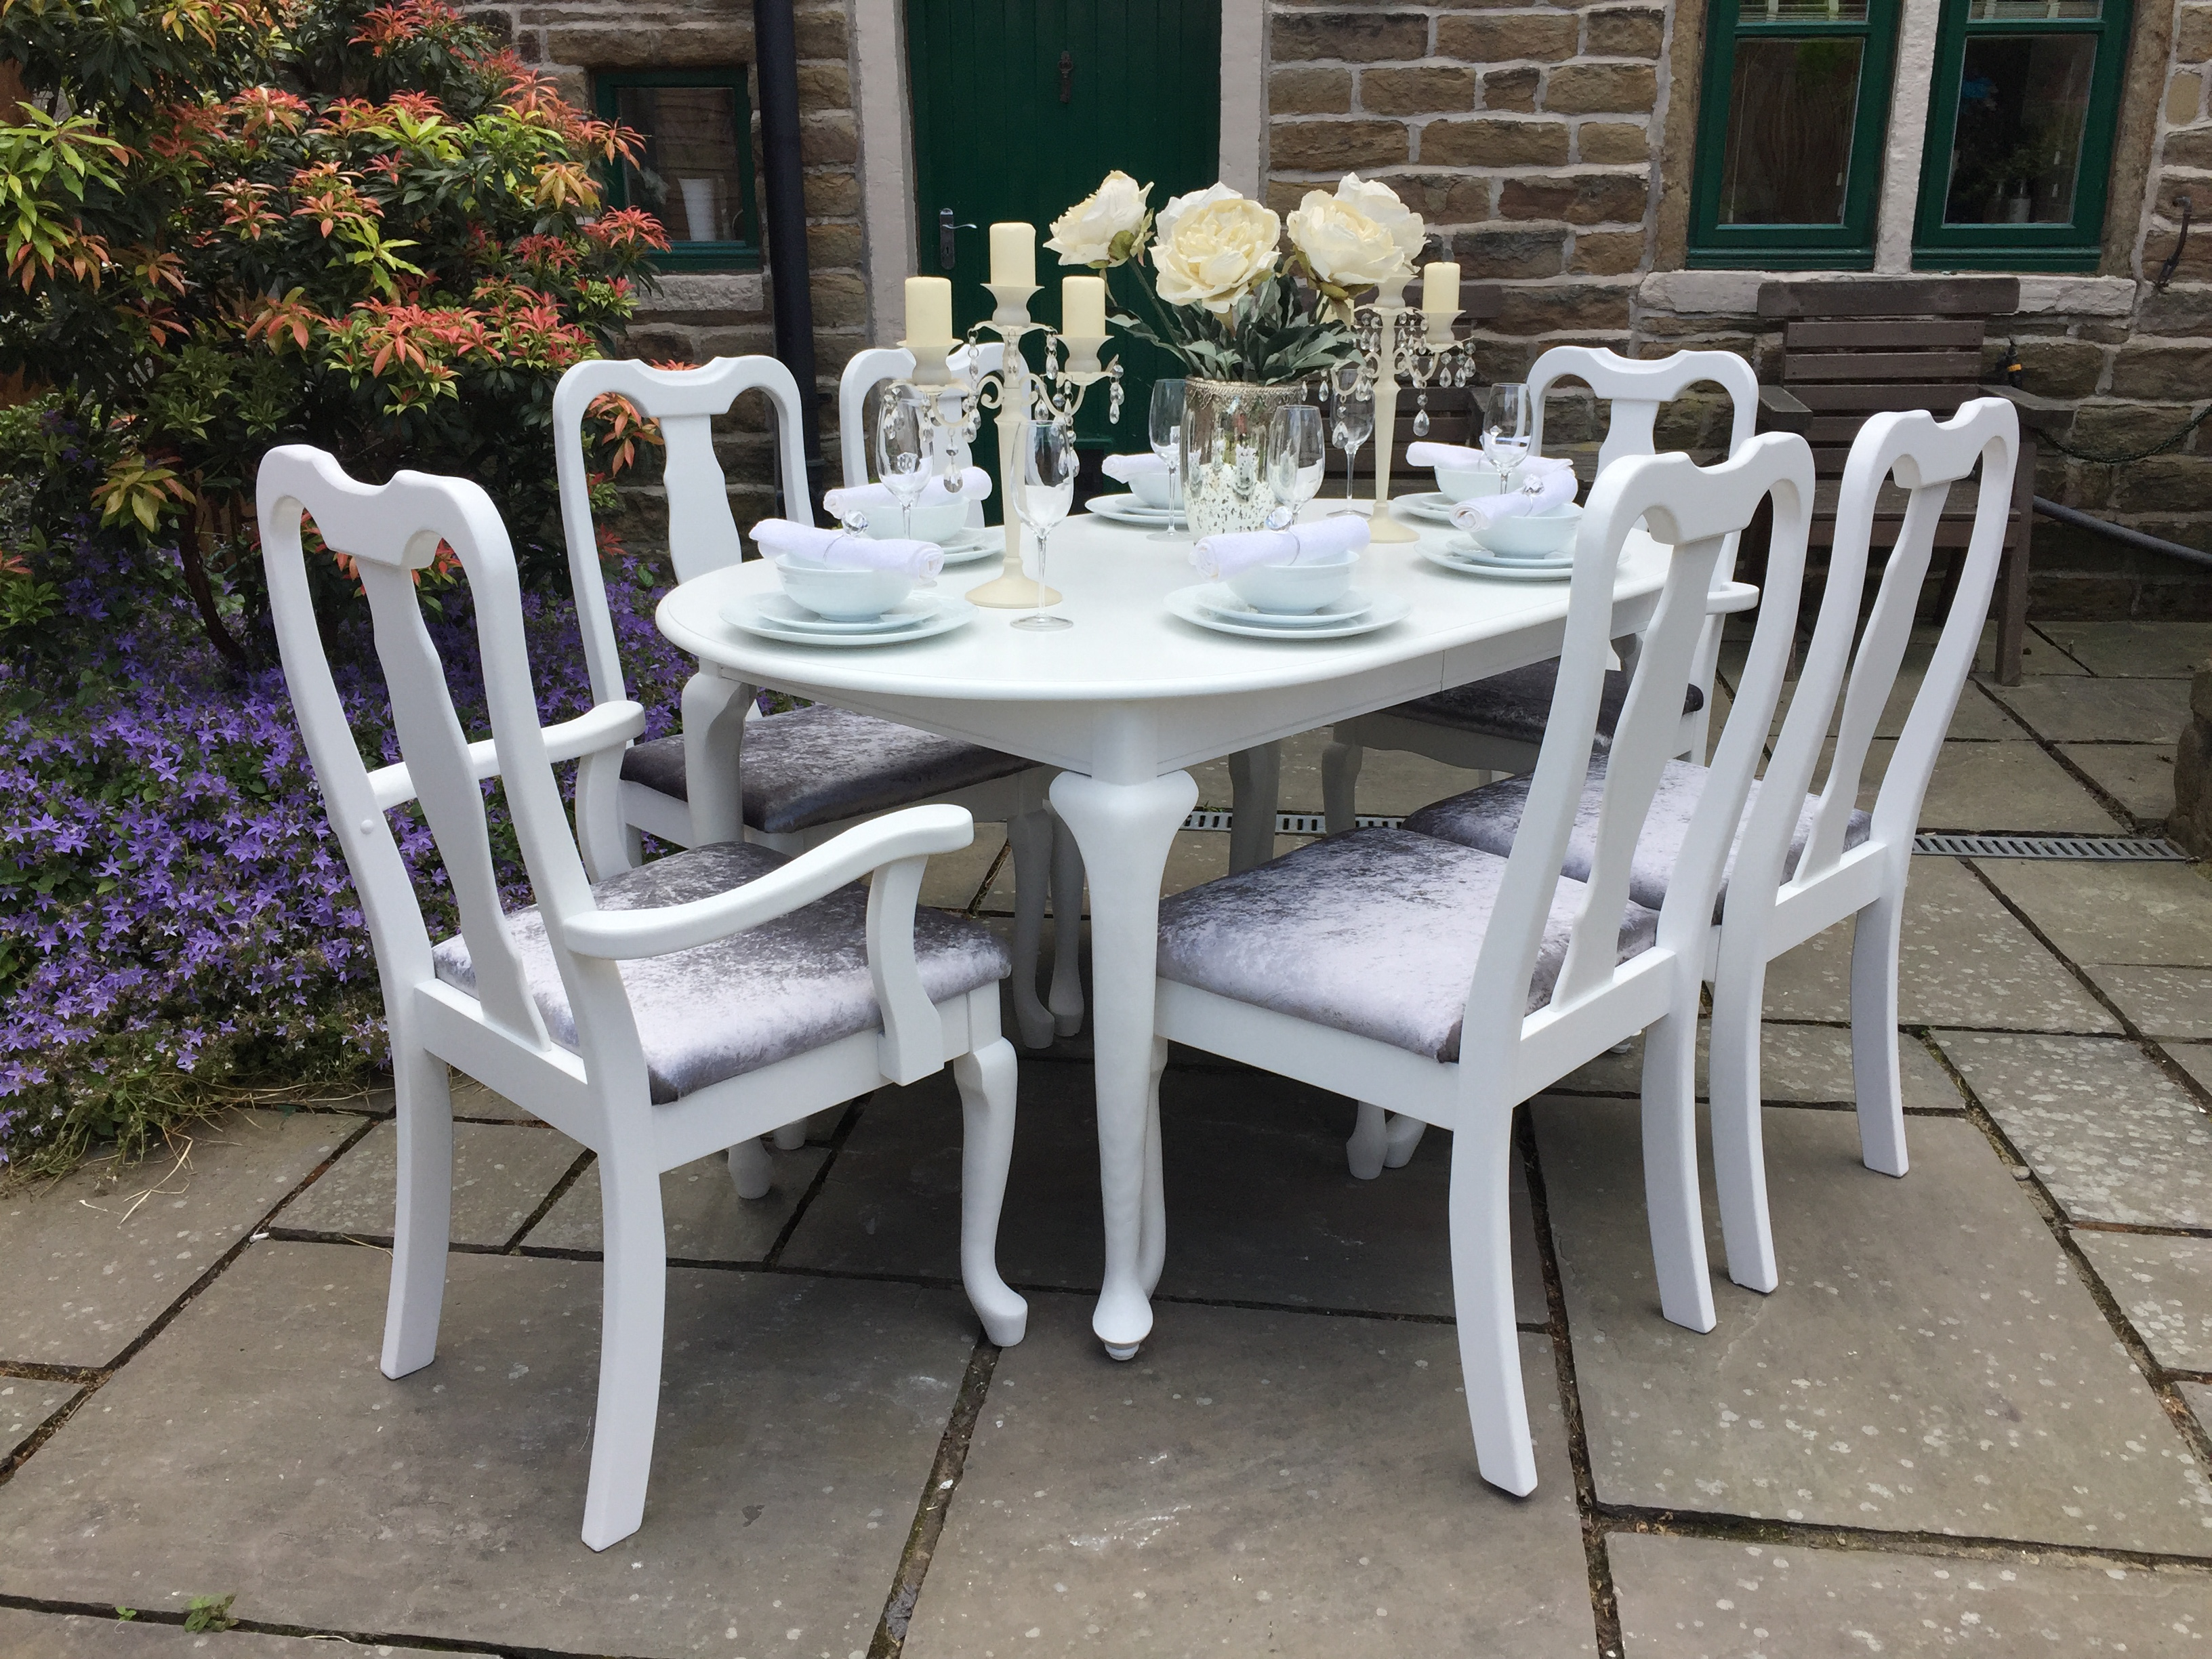 Queen Anne Extending Dining Table & 6 Chairs